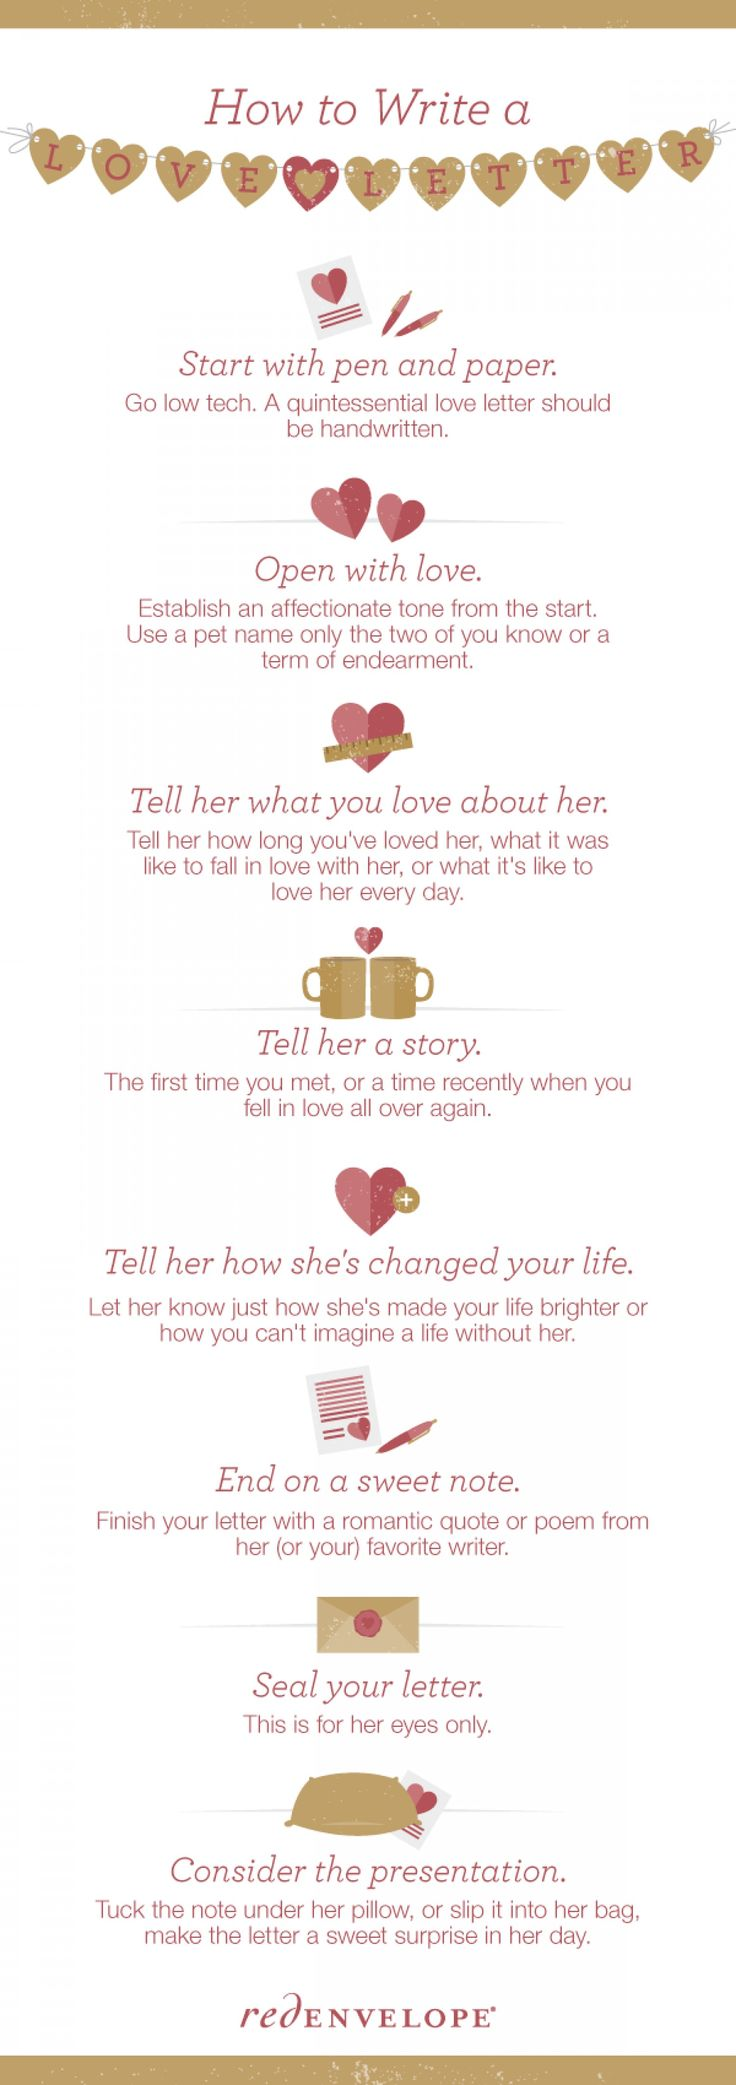 how to write a love letter infographic loveletter howto